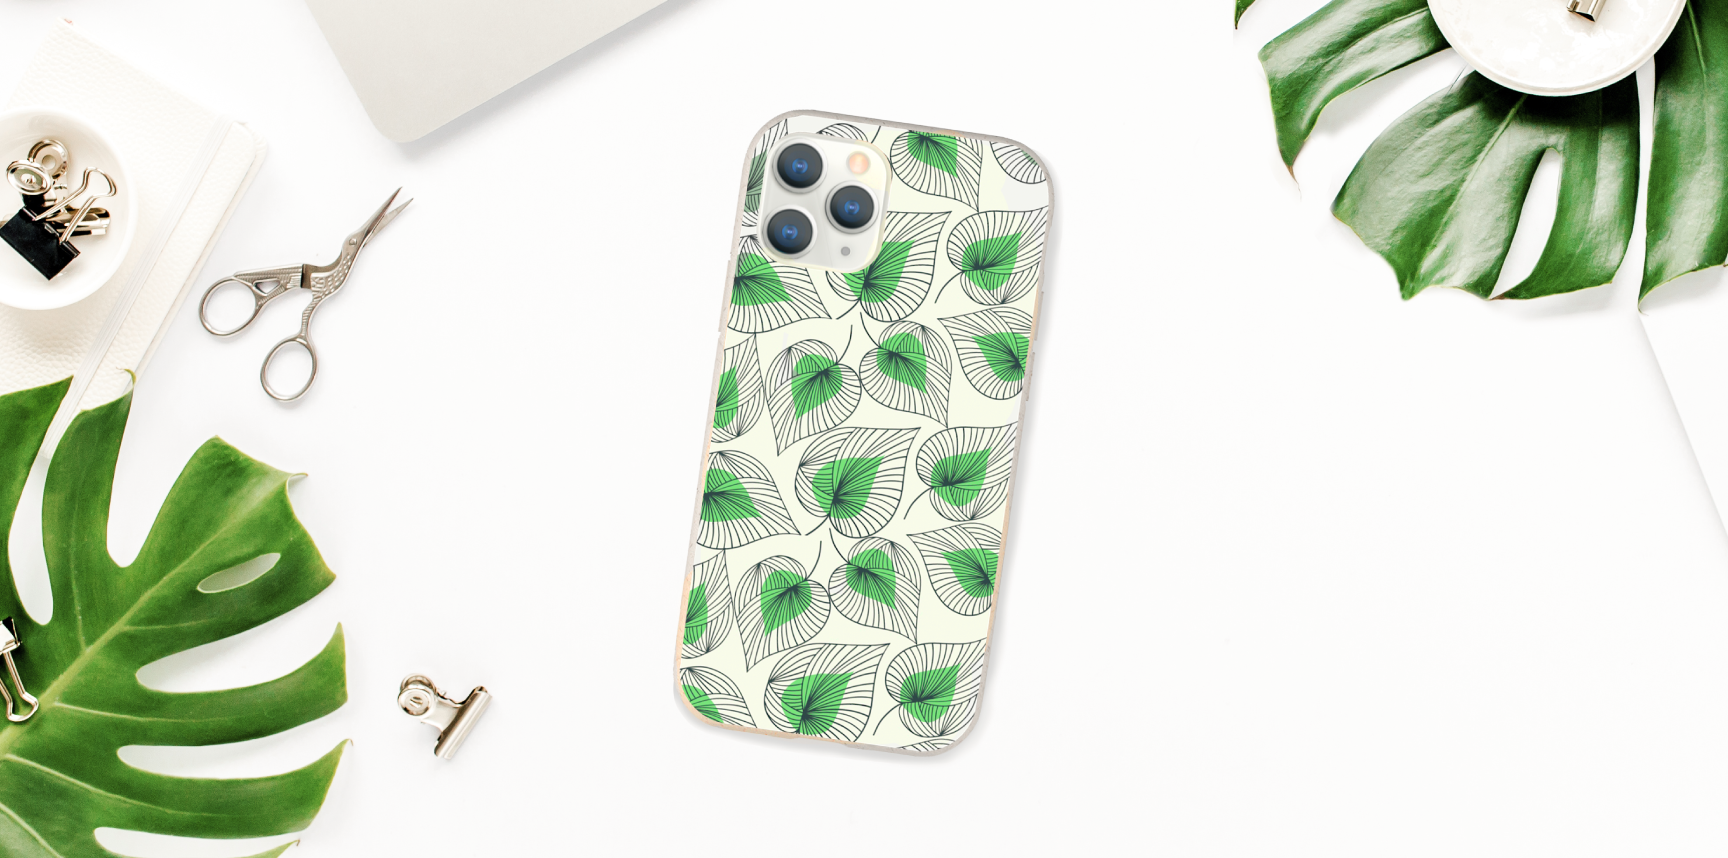 Biodegradable phone case – the eco approach to protecting your phone